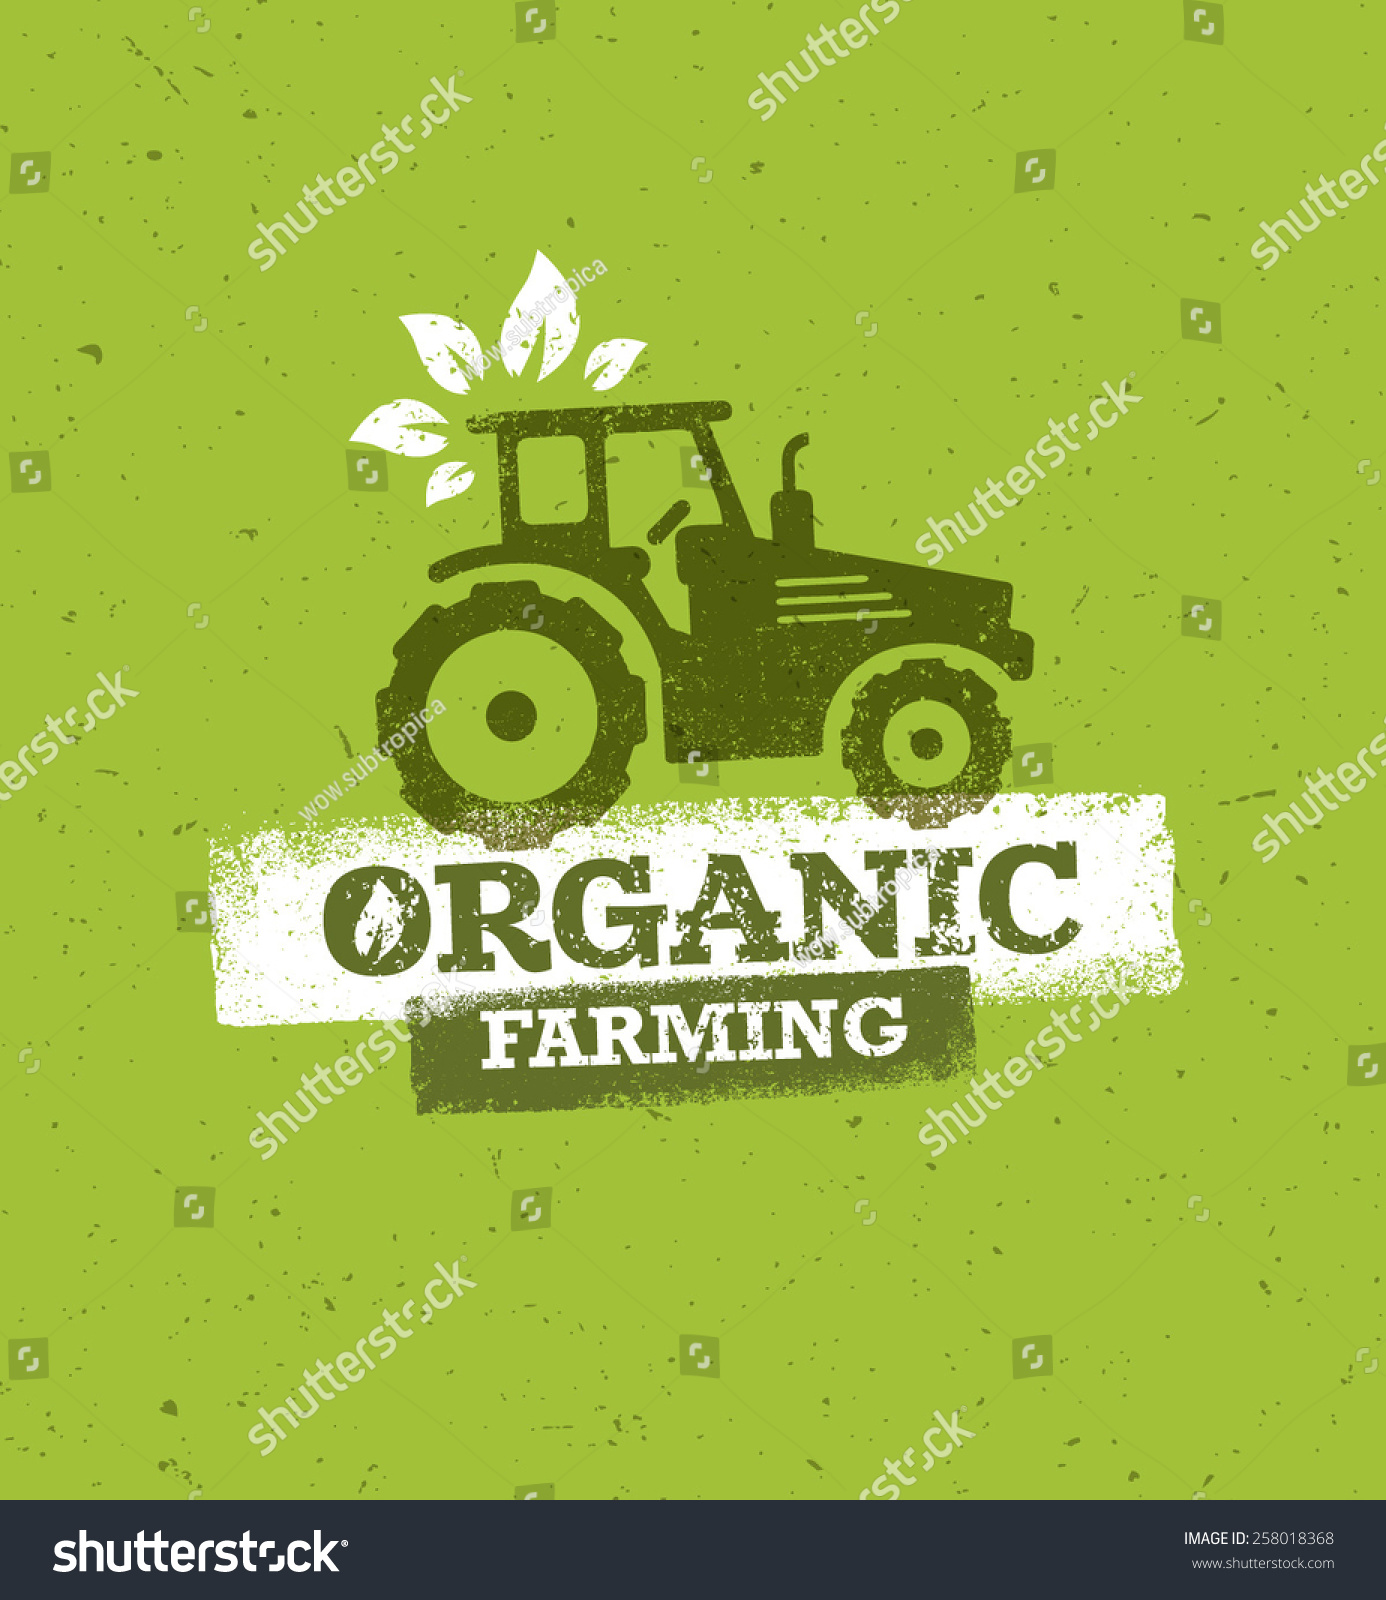 college essays college application essays organic farming essay organic farming techniques